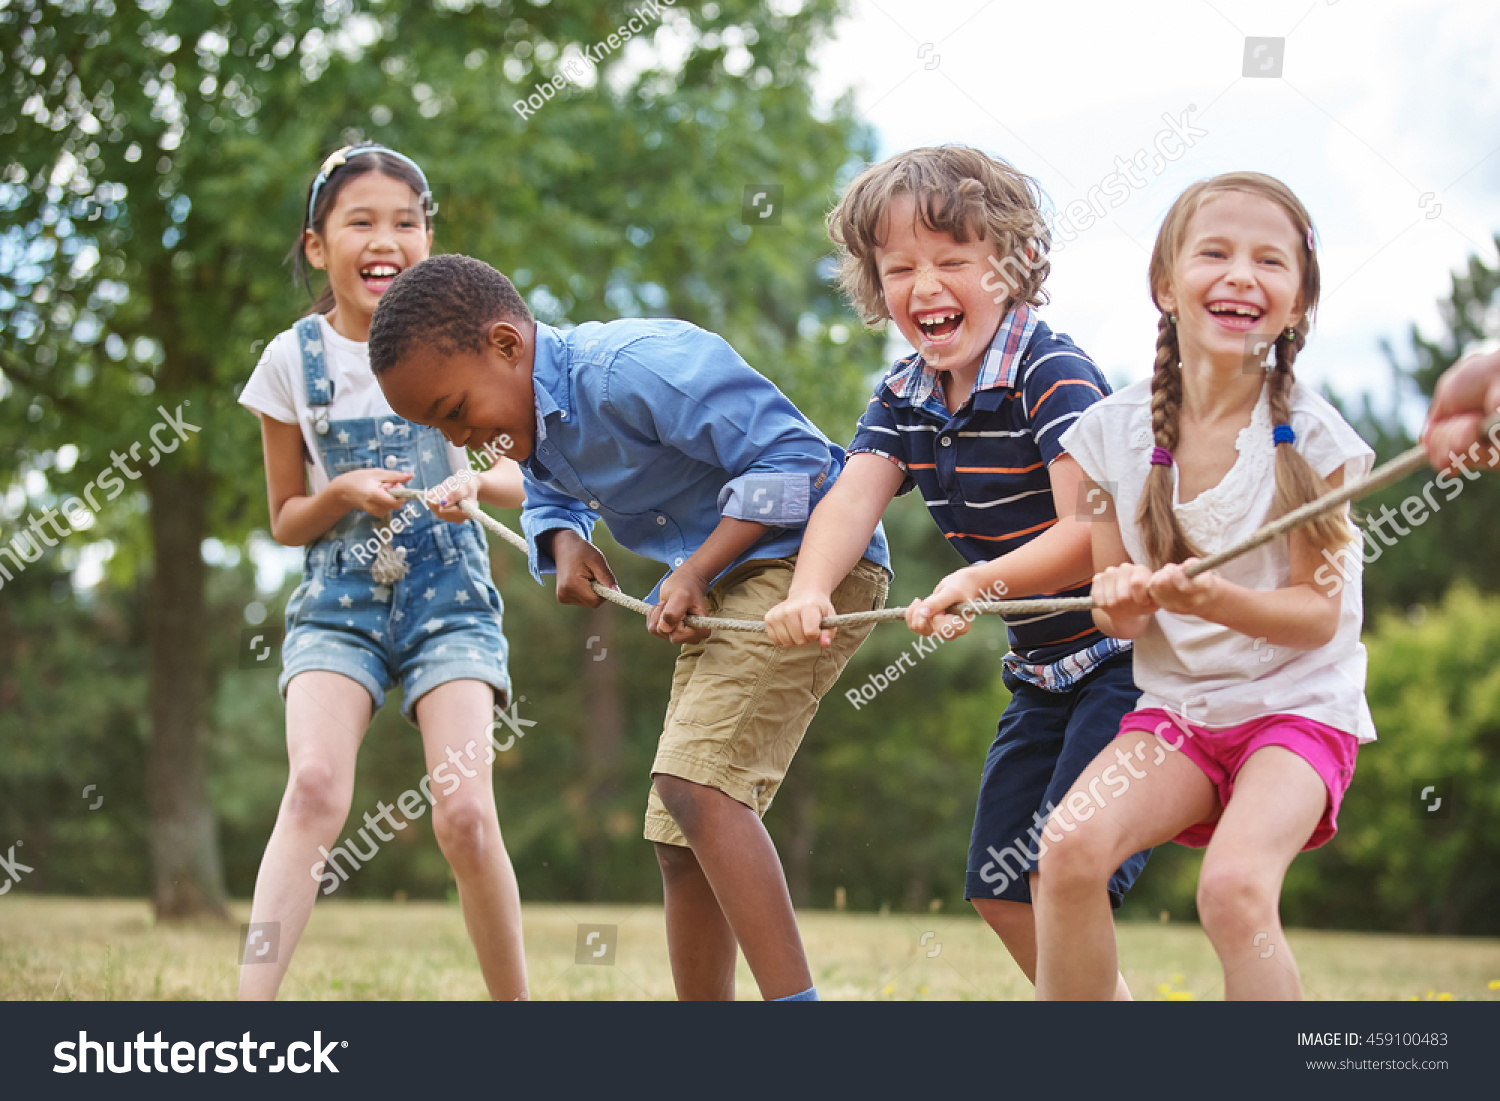 stock-photo-children-playing-tug-of-war-at-the-park-459100483